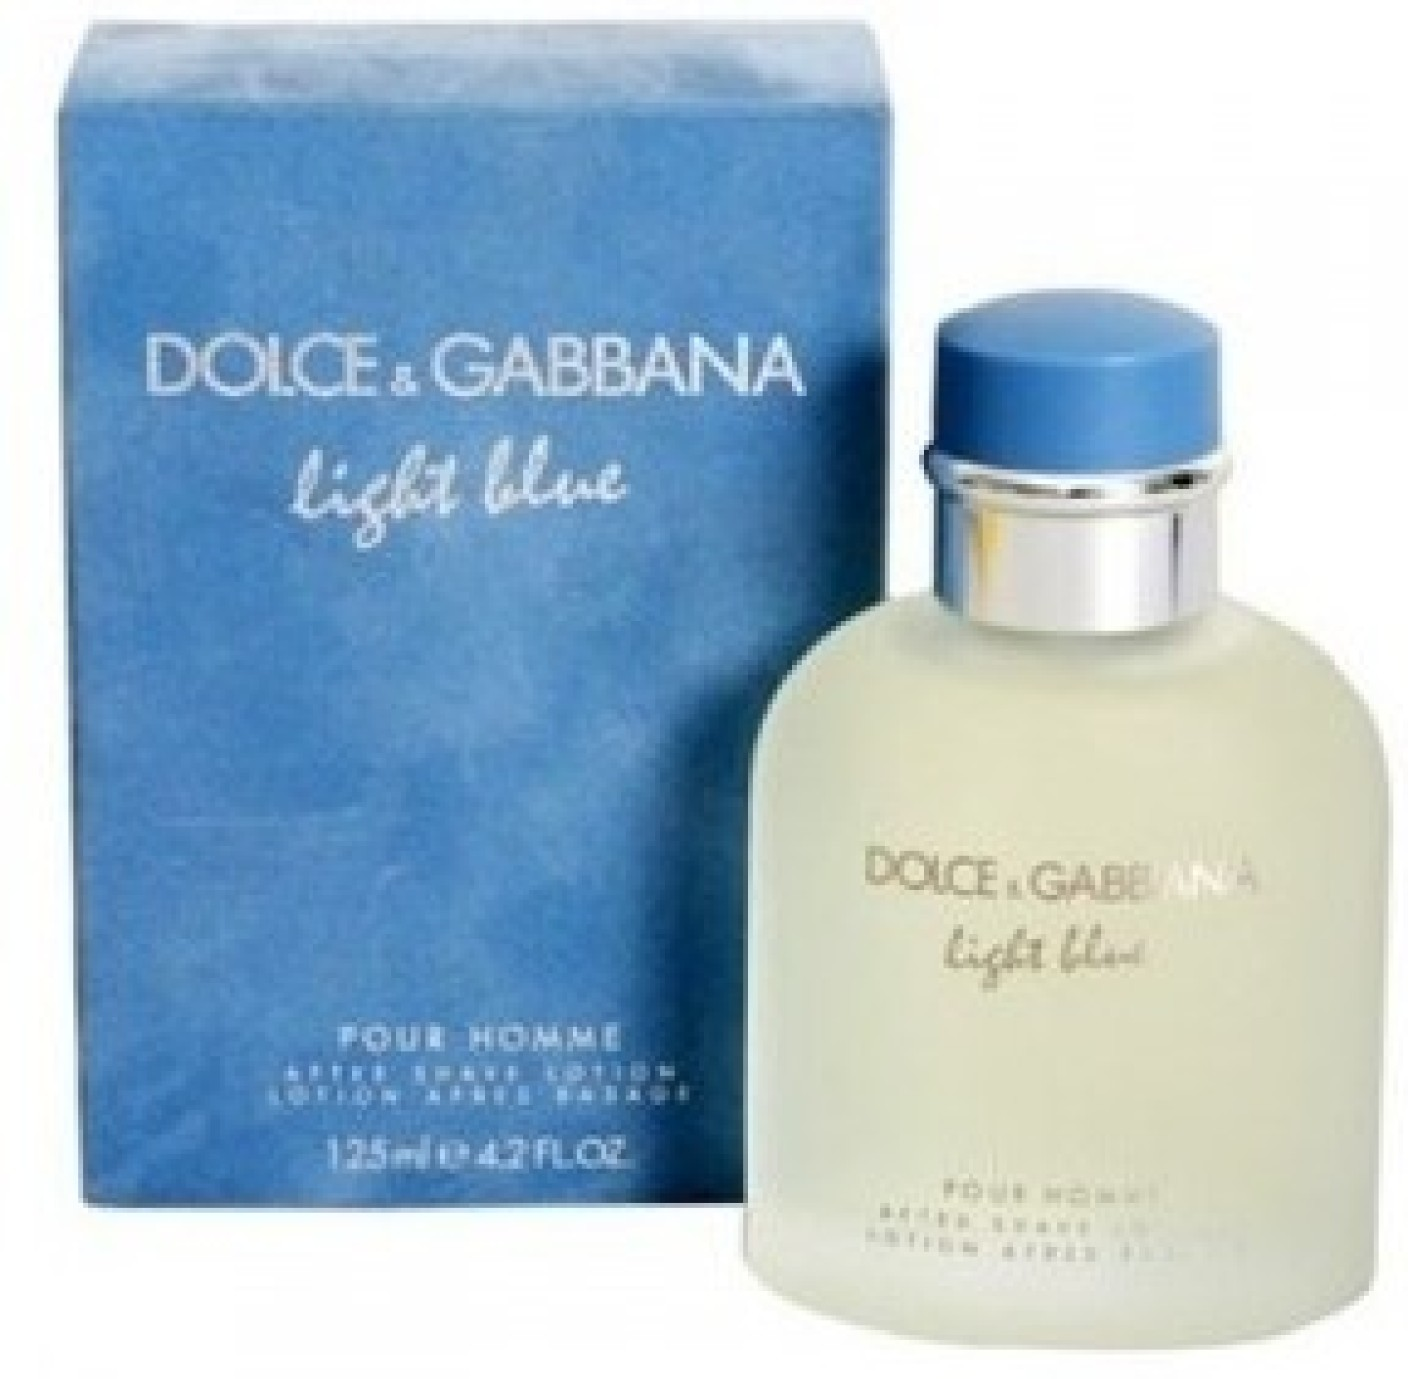 dolce gabbana light blue after shave lotion price in india buy dolce gabbana light blue. Black Bedroom Furniture Sets. Home Design Ideas